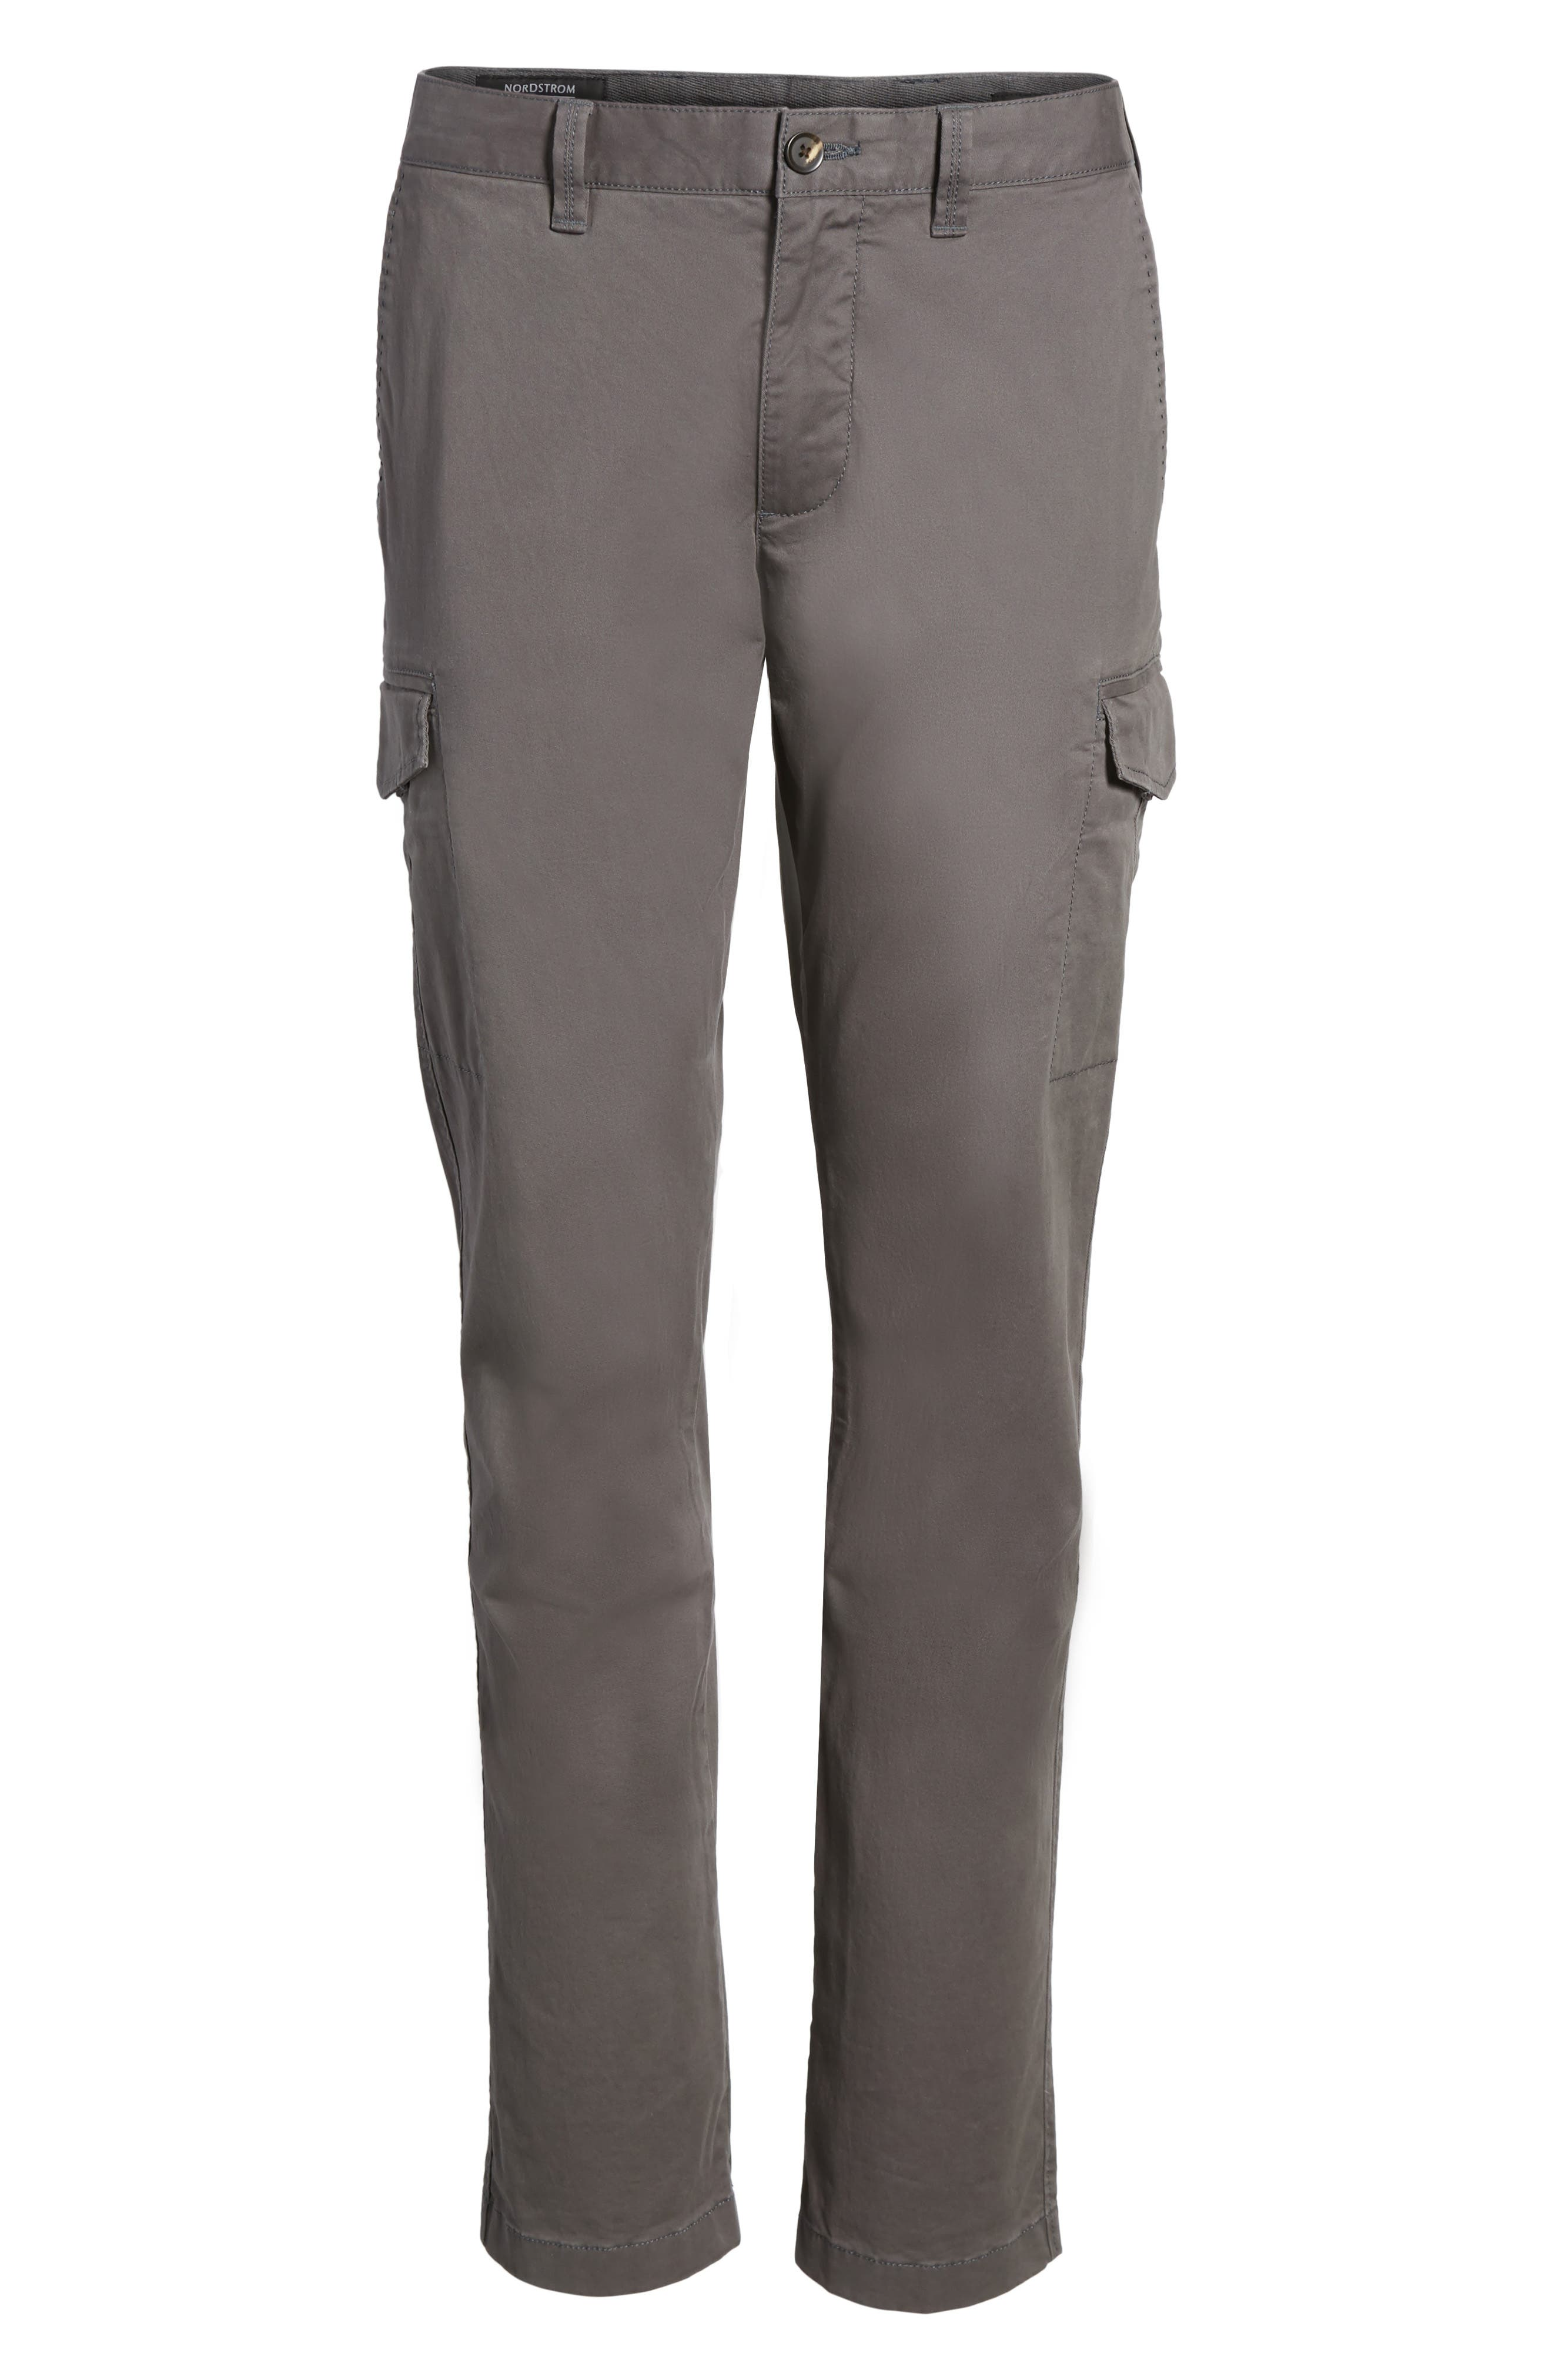 Regular Fit Cargo Pants,                             Alternate thumbnail 6, color,                             021